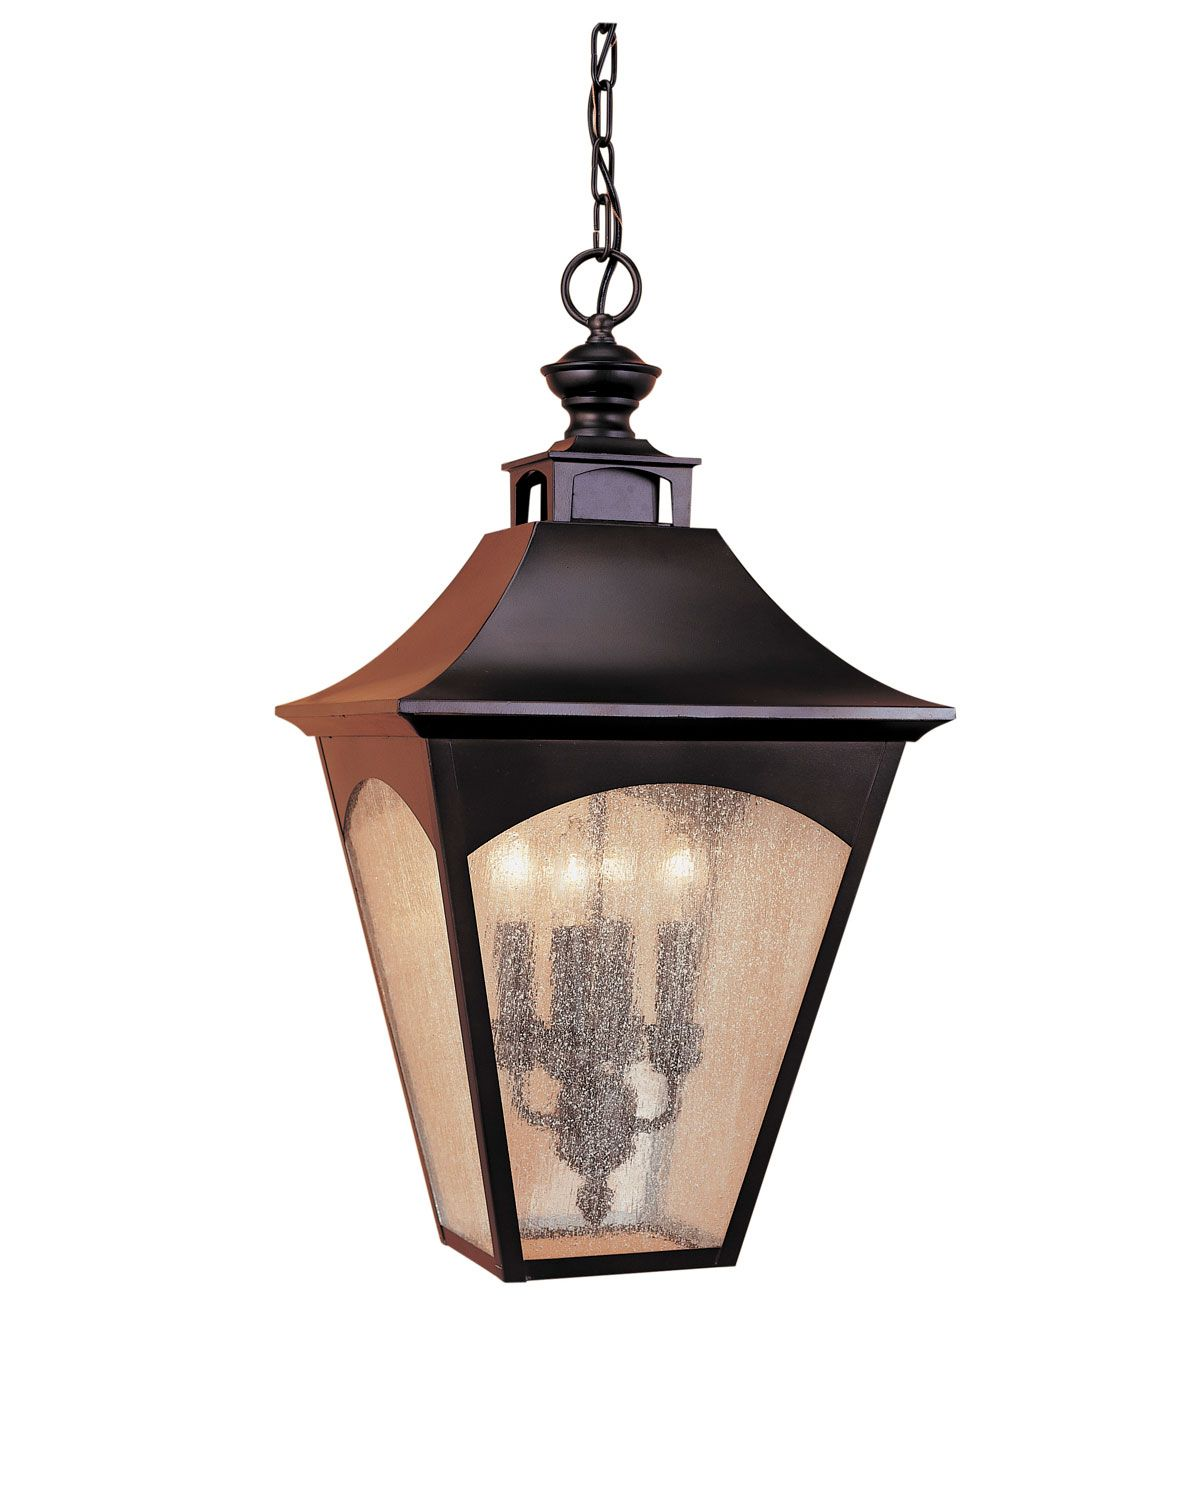 Four Light Pendant Traditional Exterior Lighting Fixture Allied